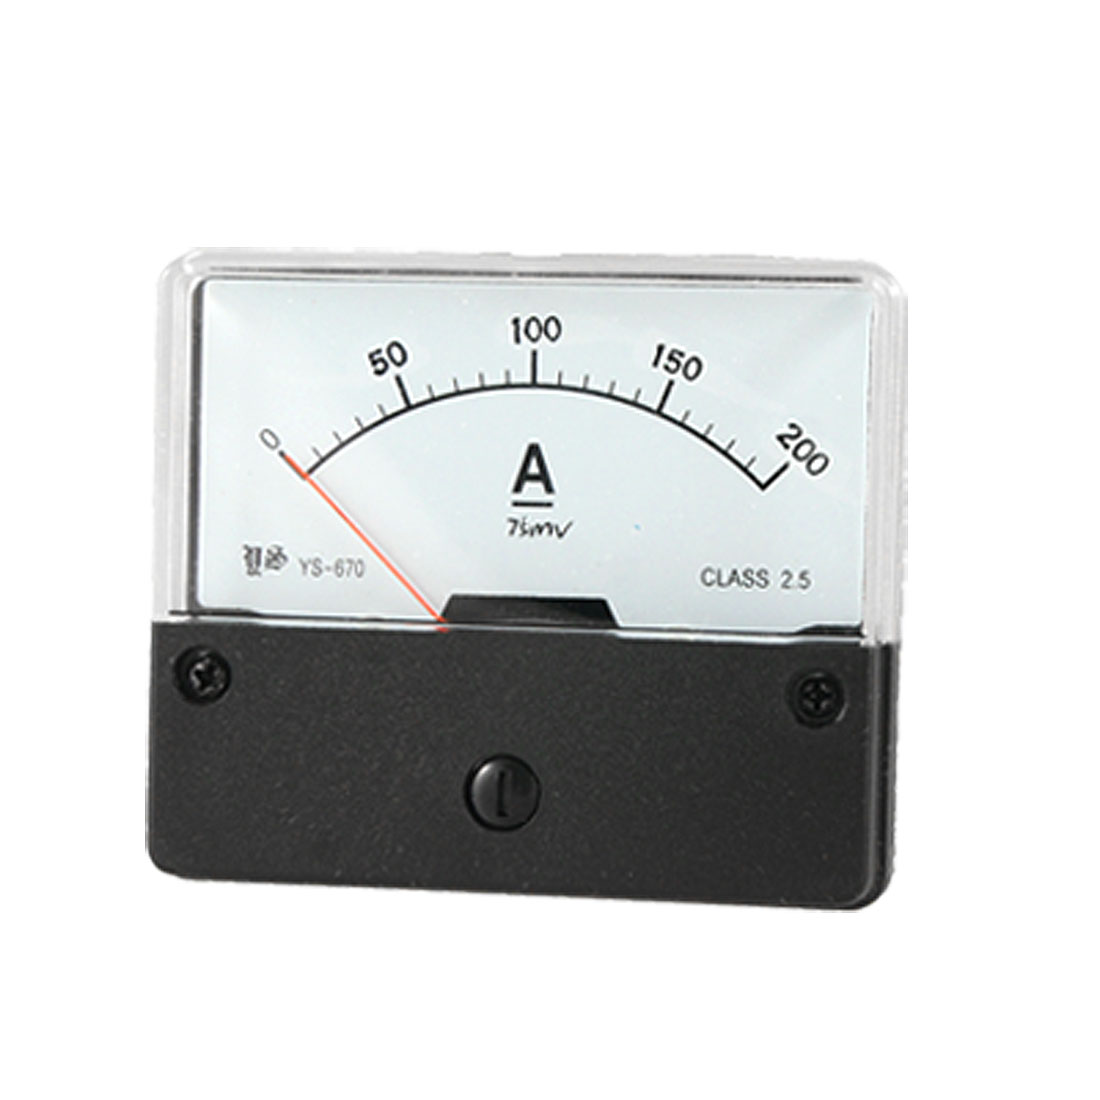 75mV Rated Voltage DC 0-200A Current Range Rectangle Amperemeter